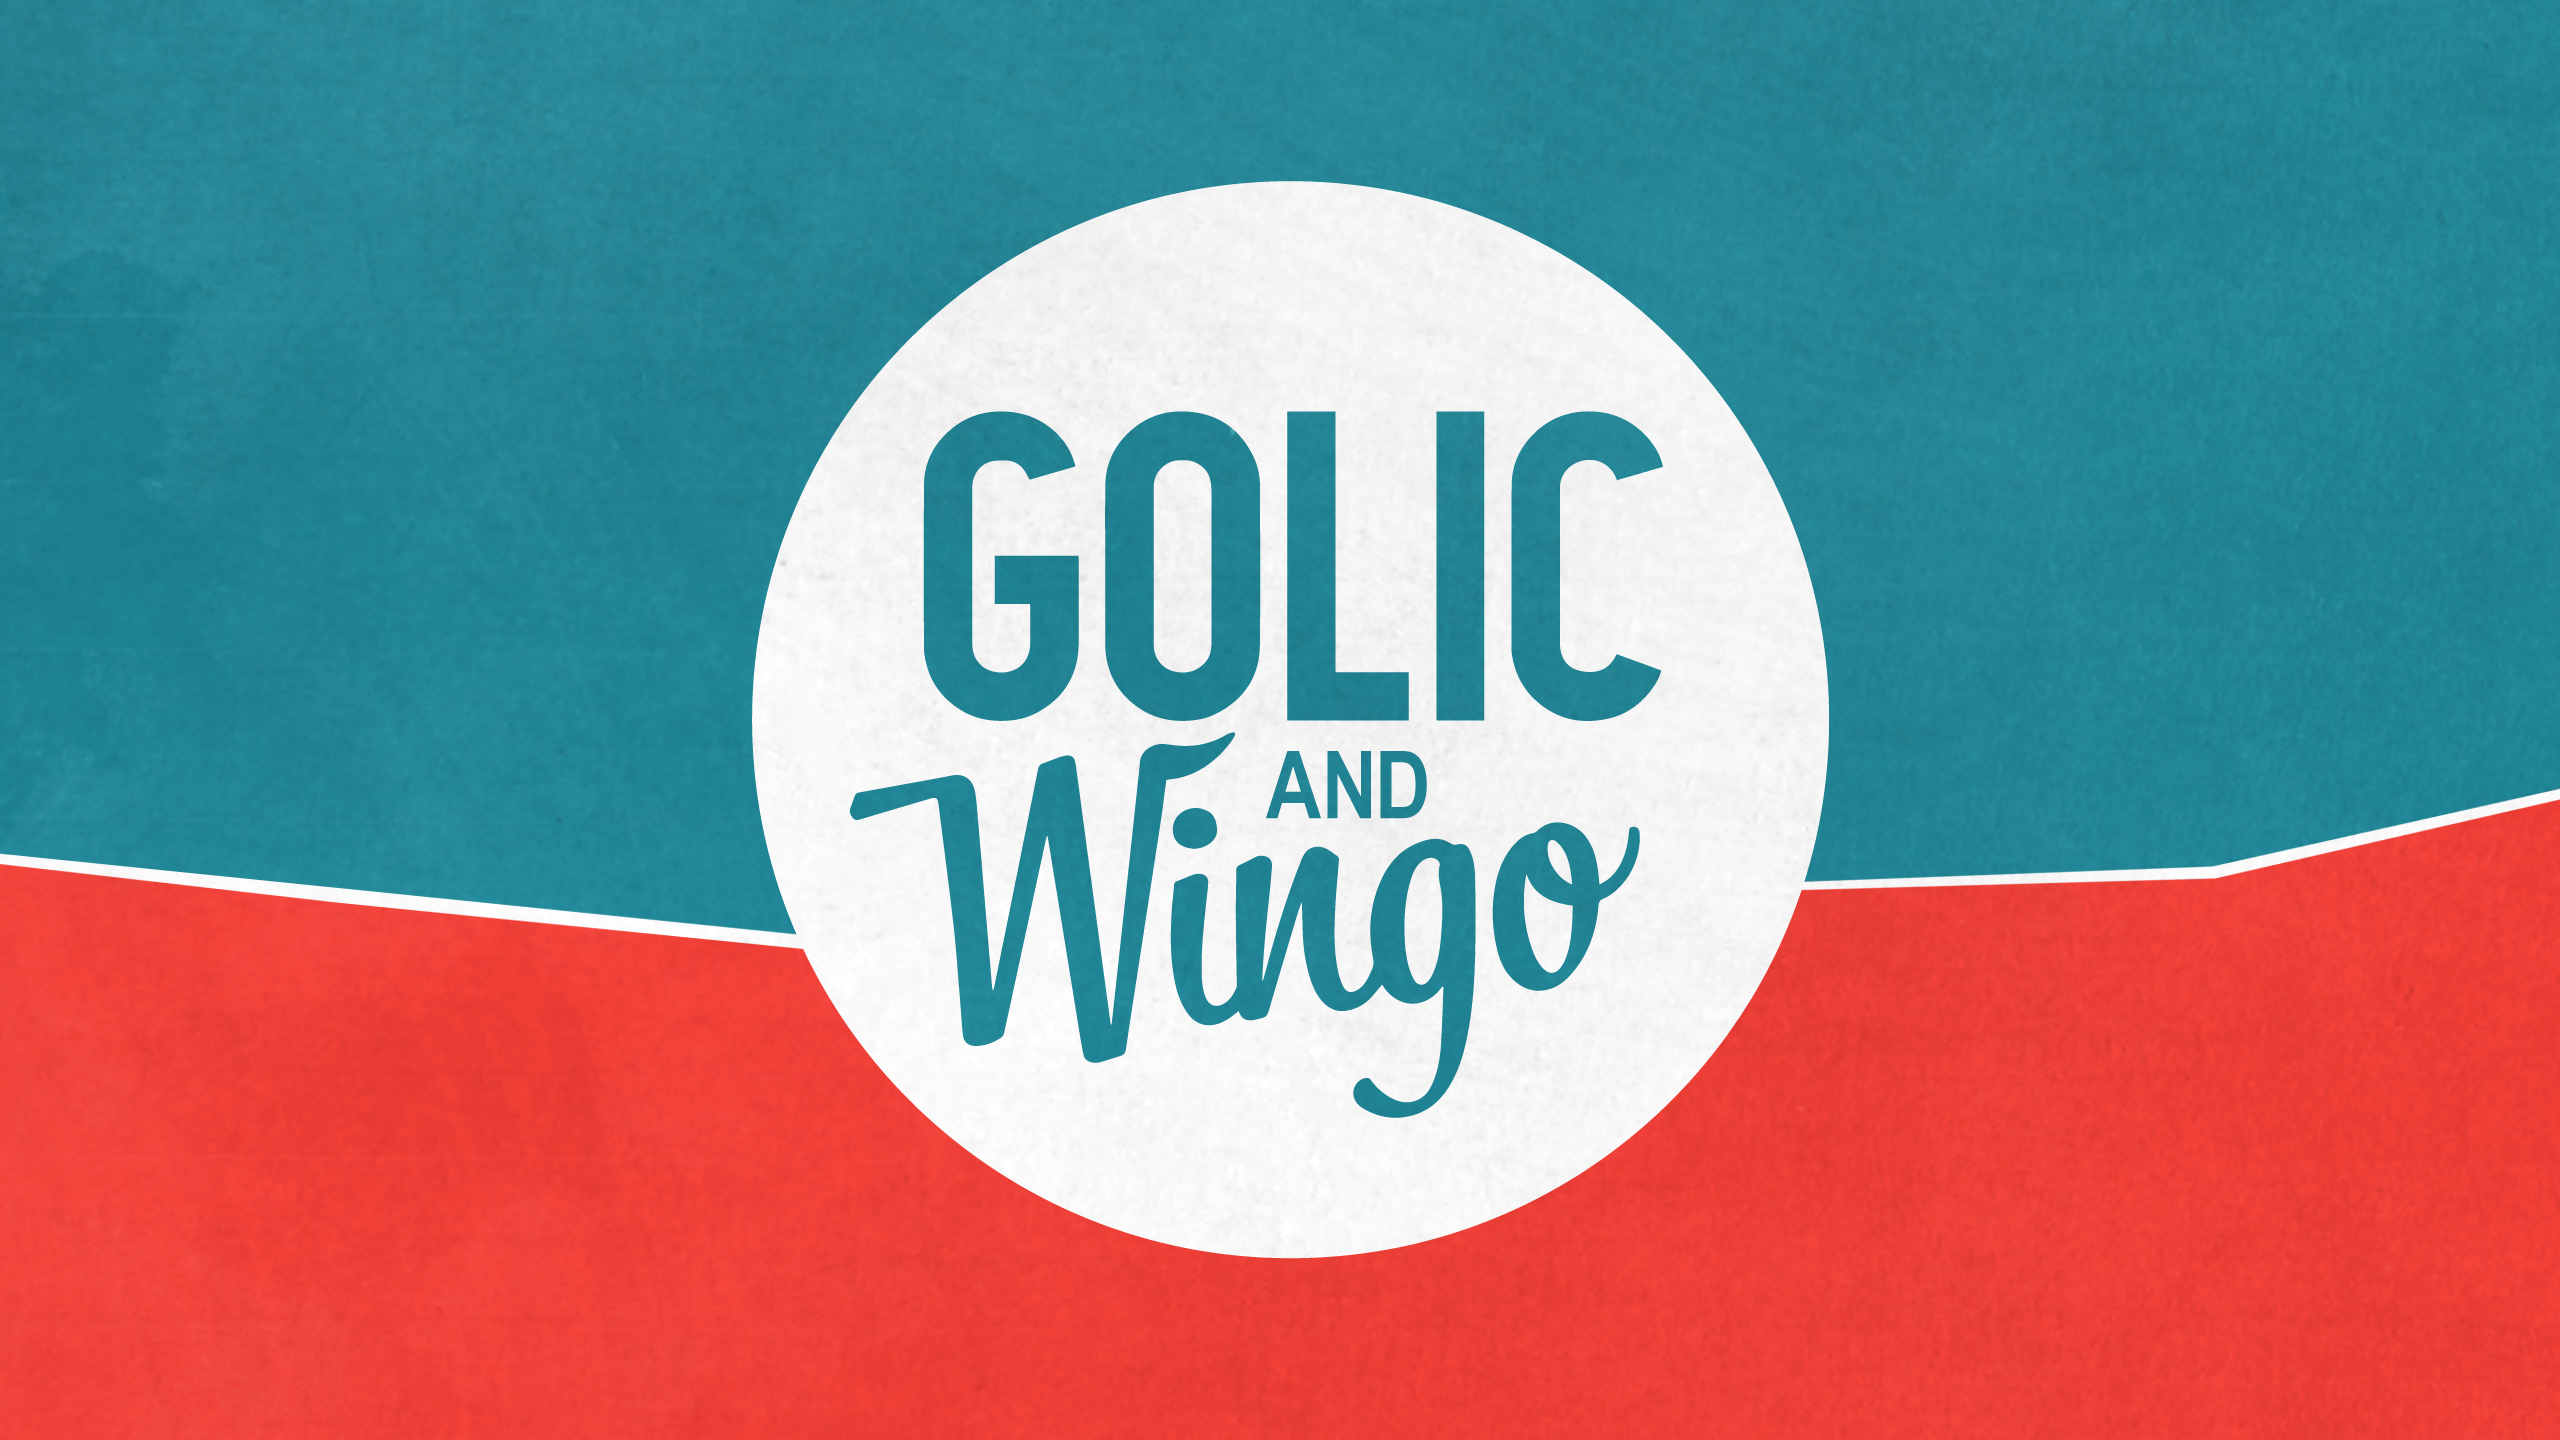 Wed, 12/19 - Golic and Wingo